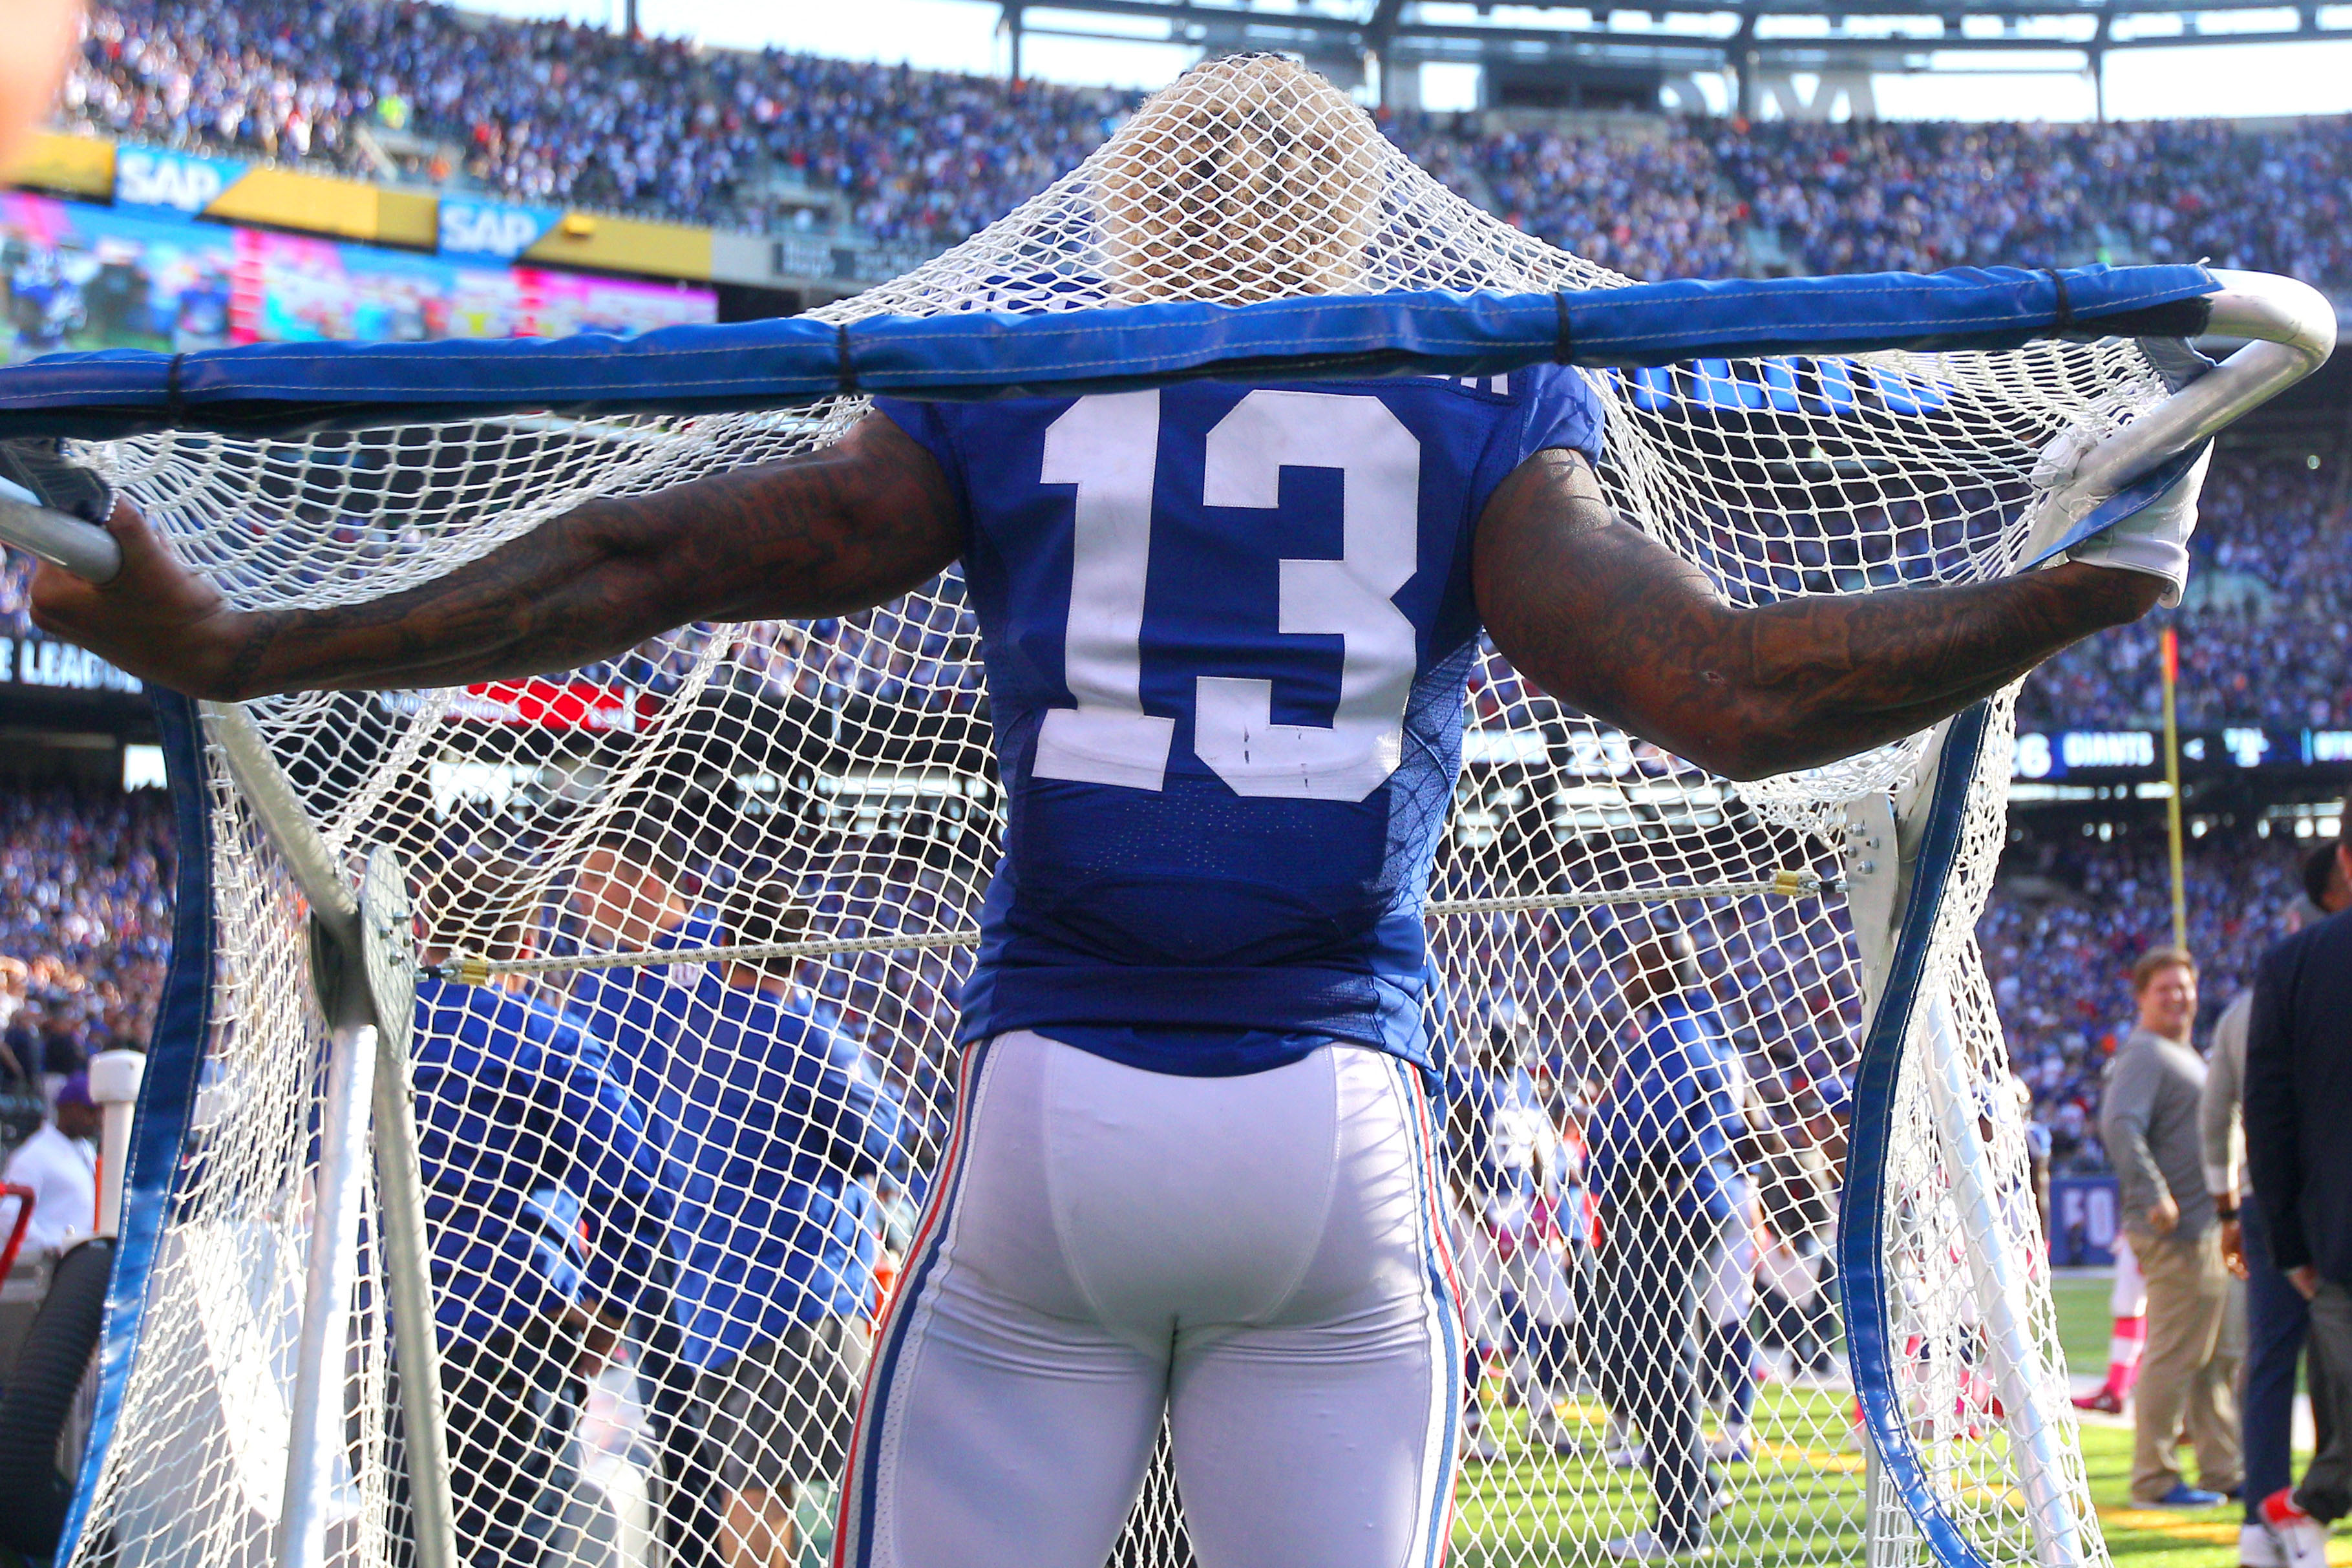 New York Giants' Eli Manning Says Odell Beckham Jr.'s Antics Can Make You 'Real Sick'